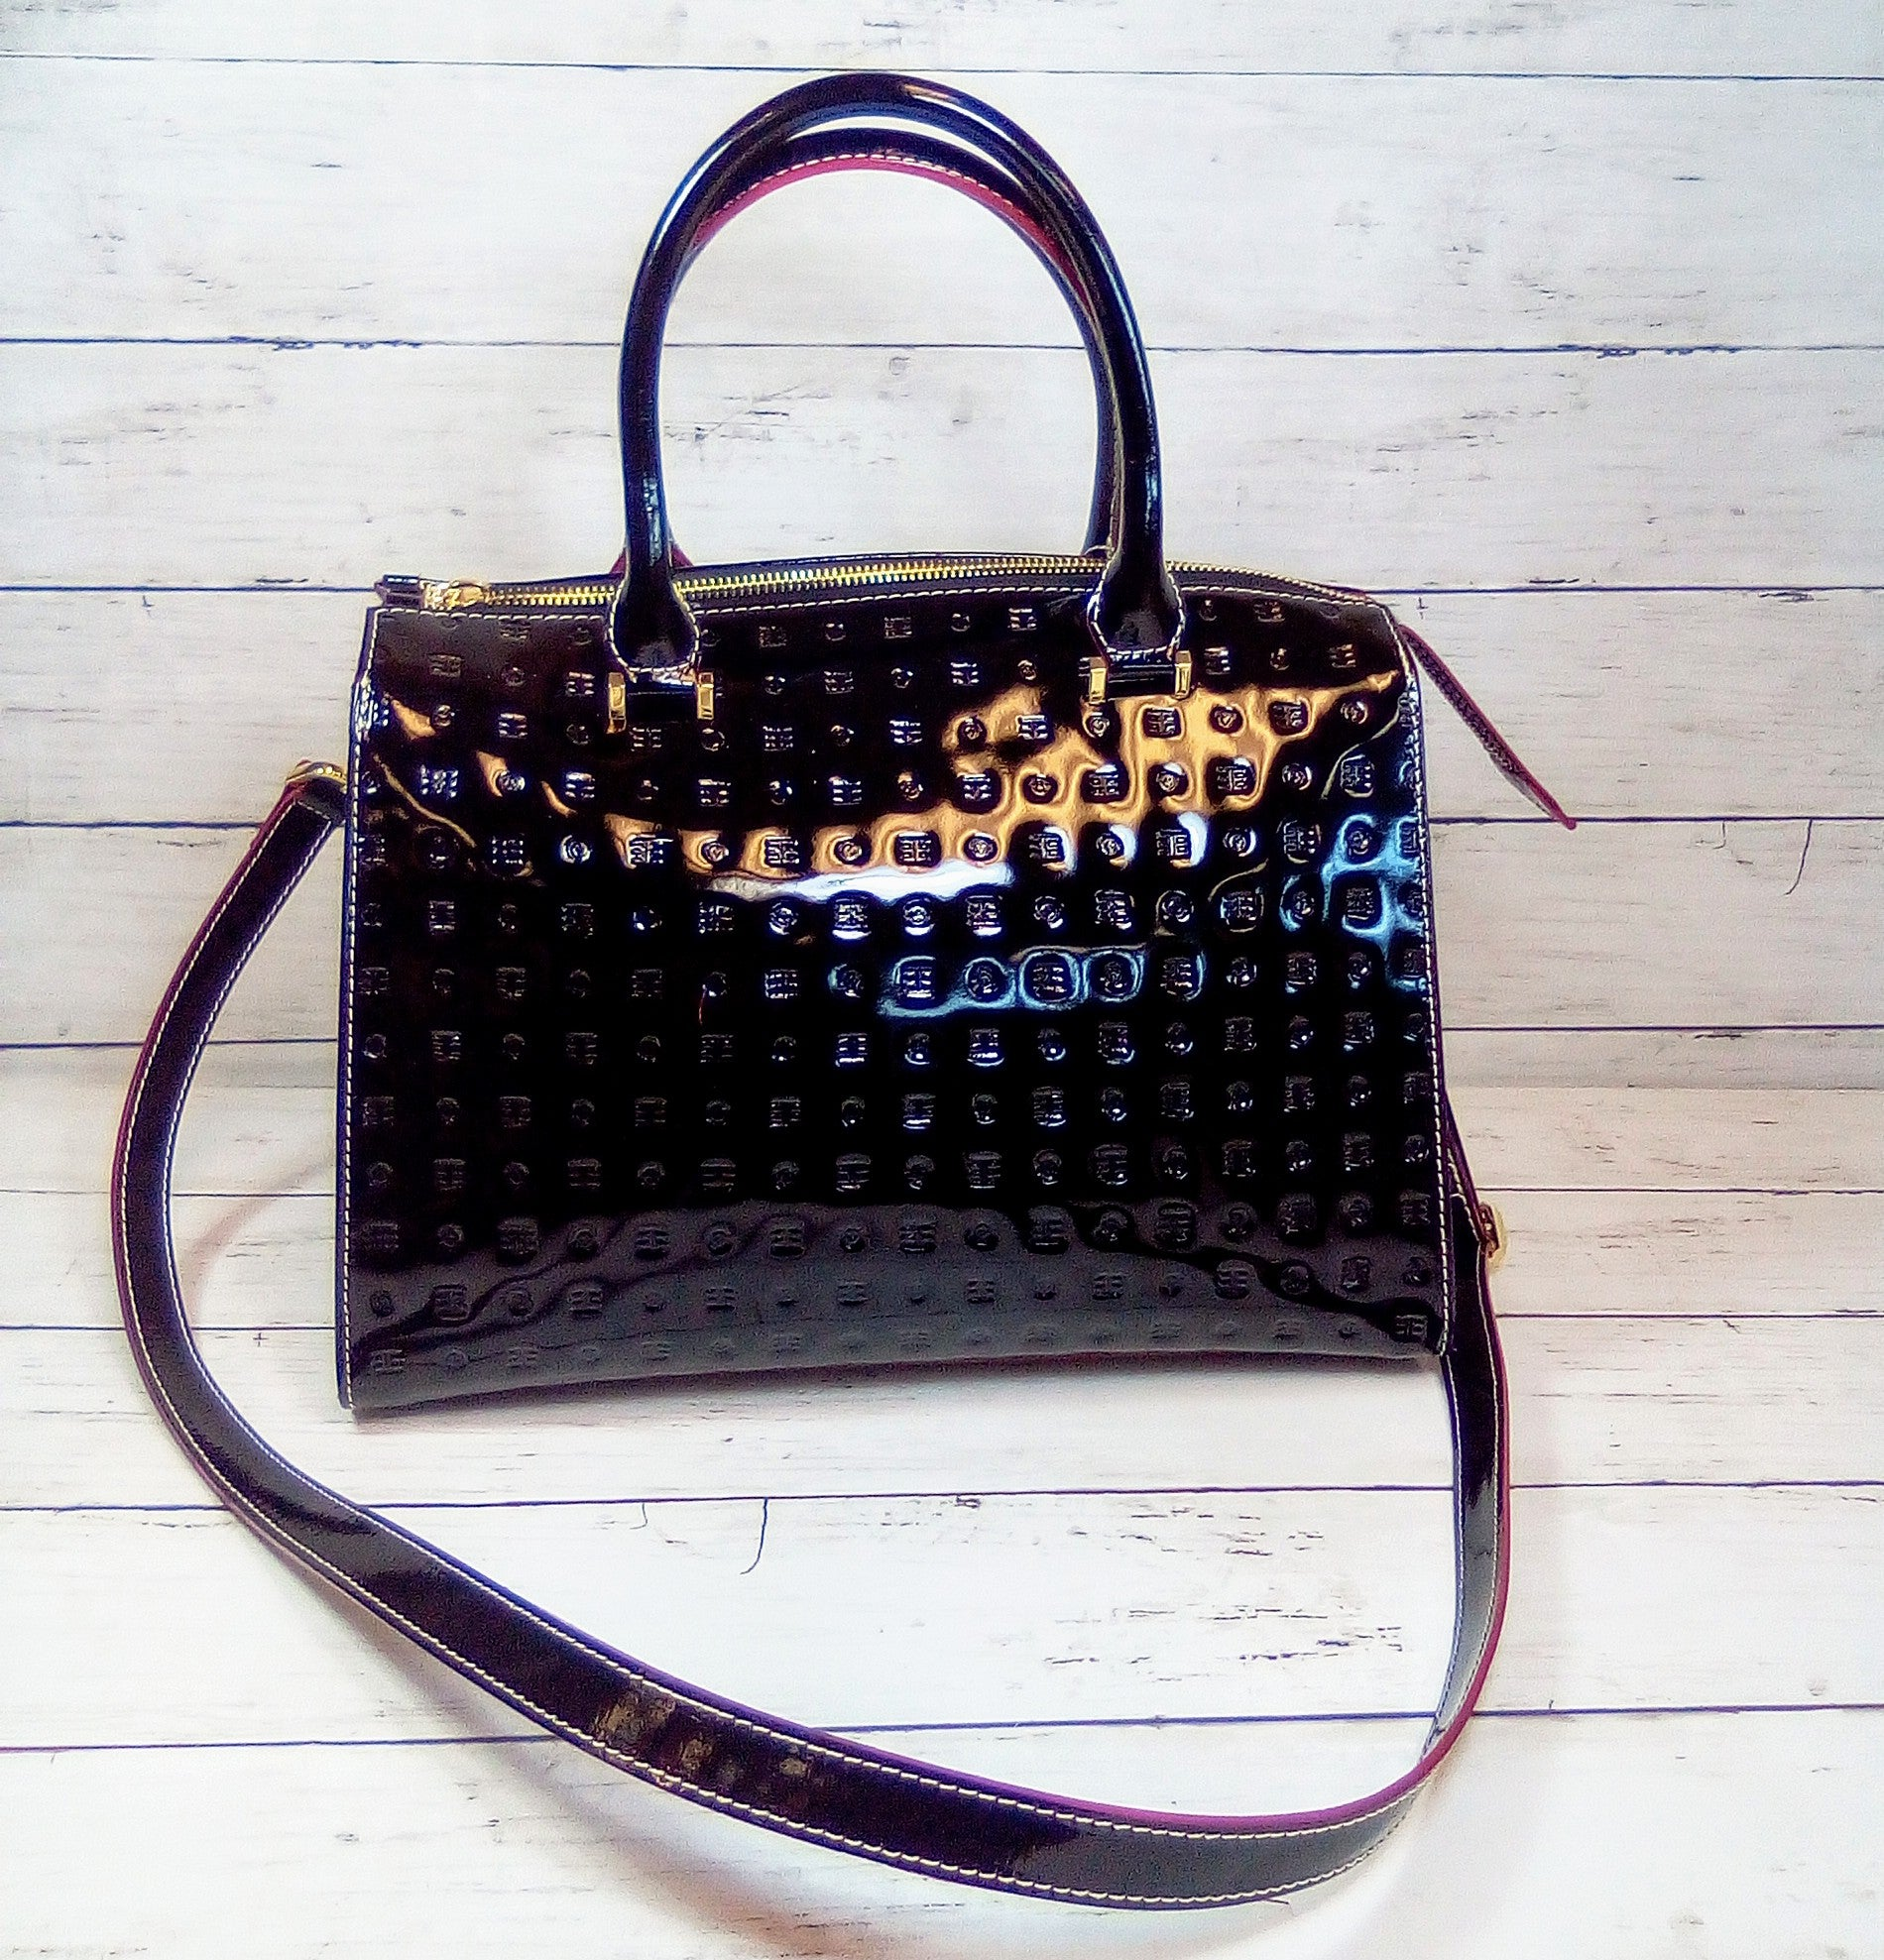 Primary Photo - BRAND: ARCADIA<BR>STYLE: HANDBAG LEATHER <BR>COLOR: BLACK <BR>SIZE: LARGE <BR>OTHER INFO: ARCADIA - CLIZIA PATENT W/SNAKESKIN <BR>SKU: 216-21644-14891